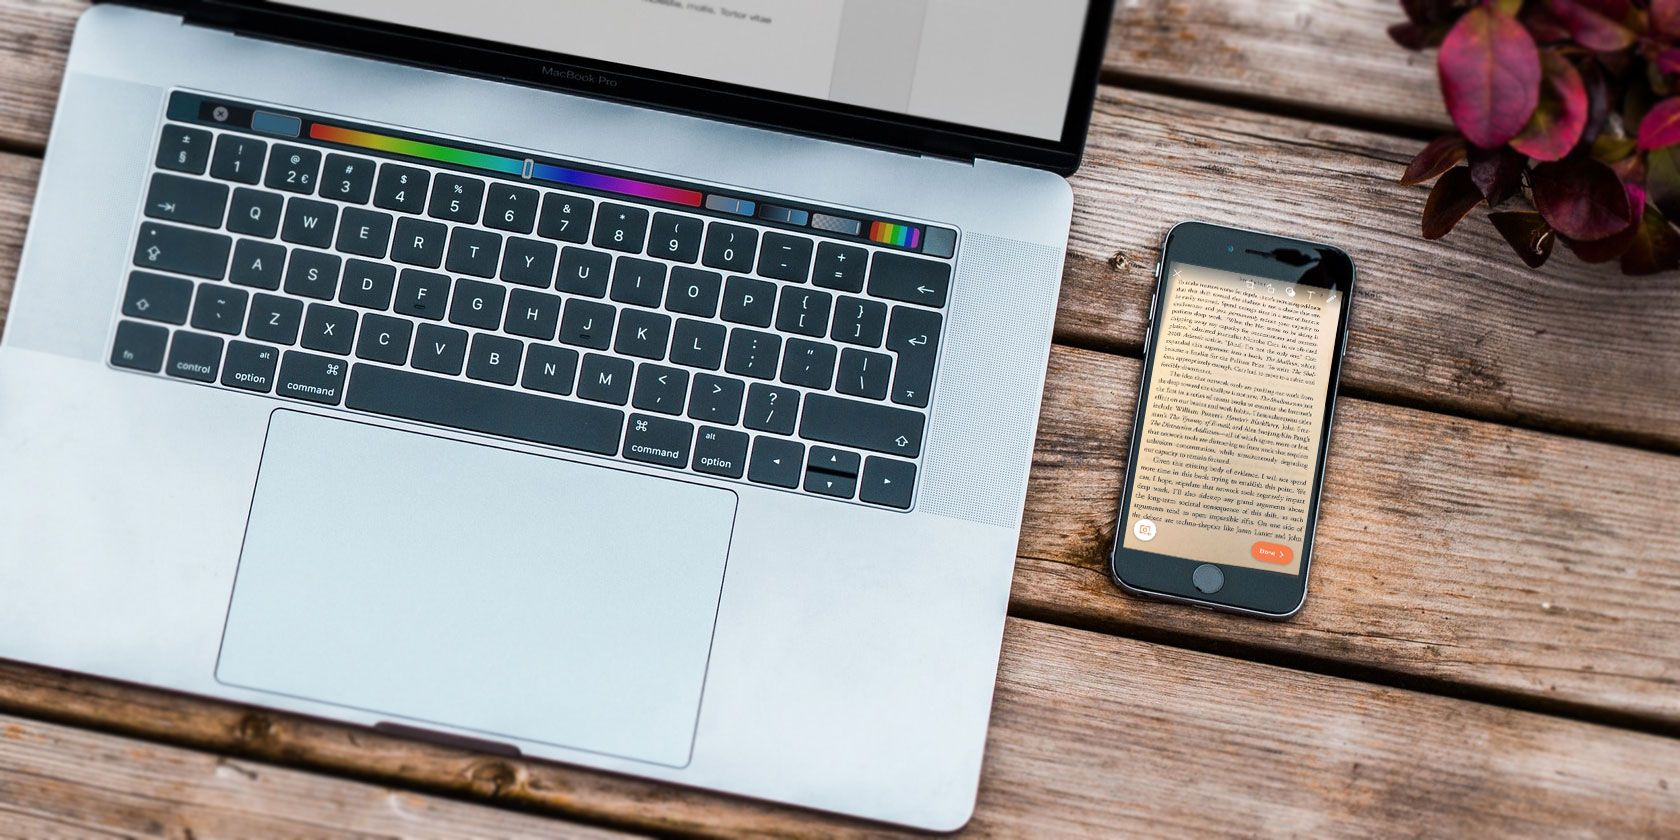 How To Scan Documents Into Your Mac Using An Iphone Iphone Hacks Smartphone Photography Iphone